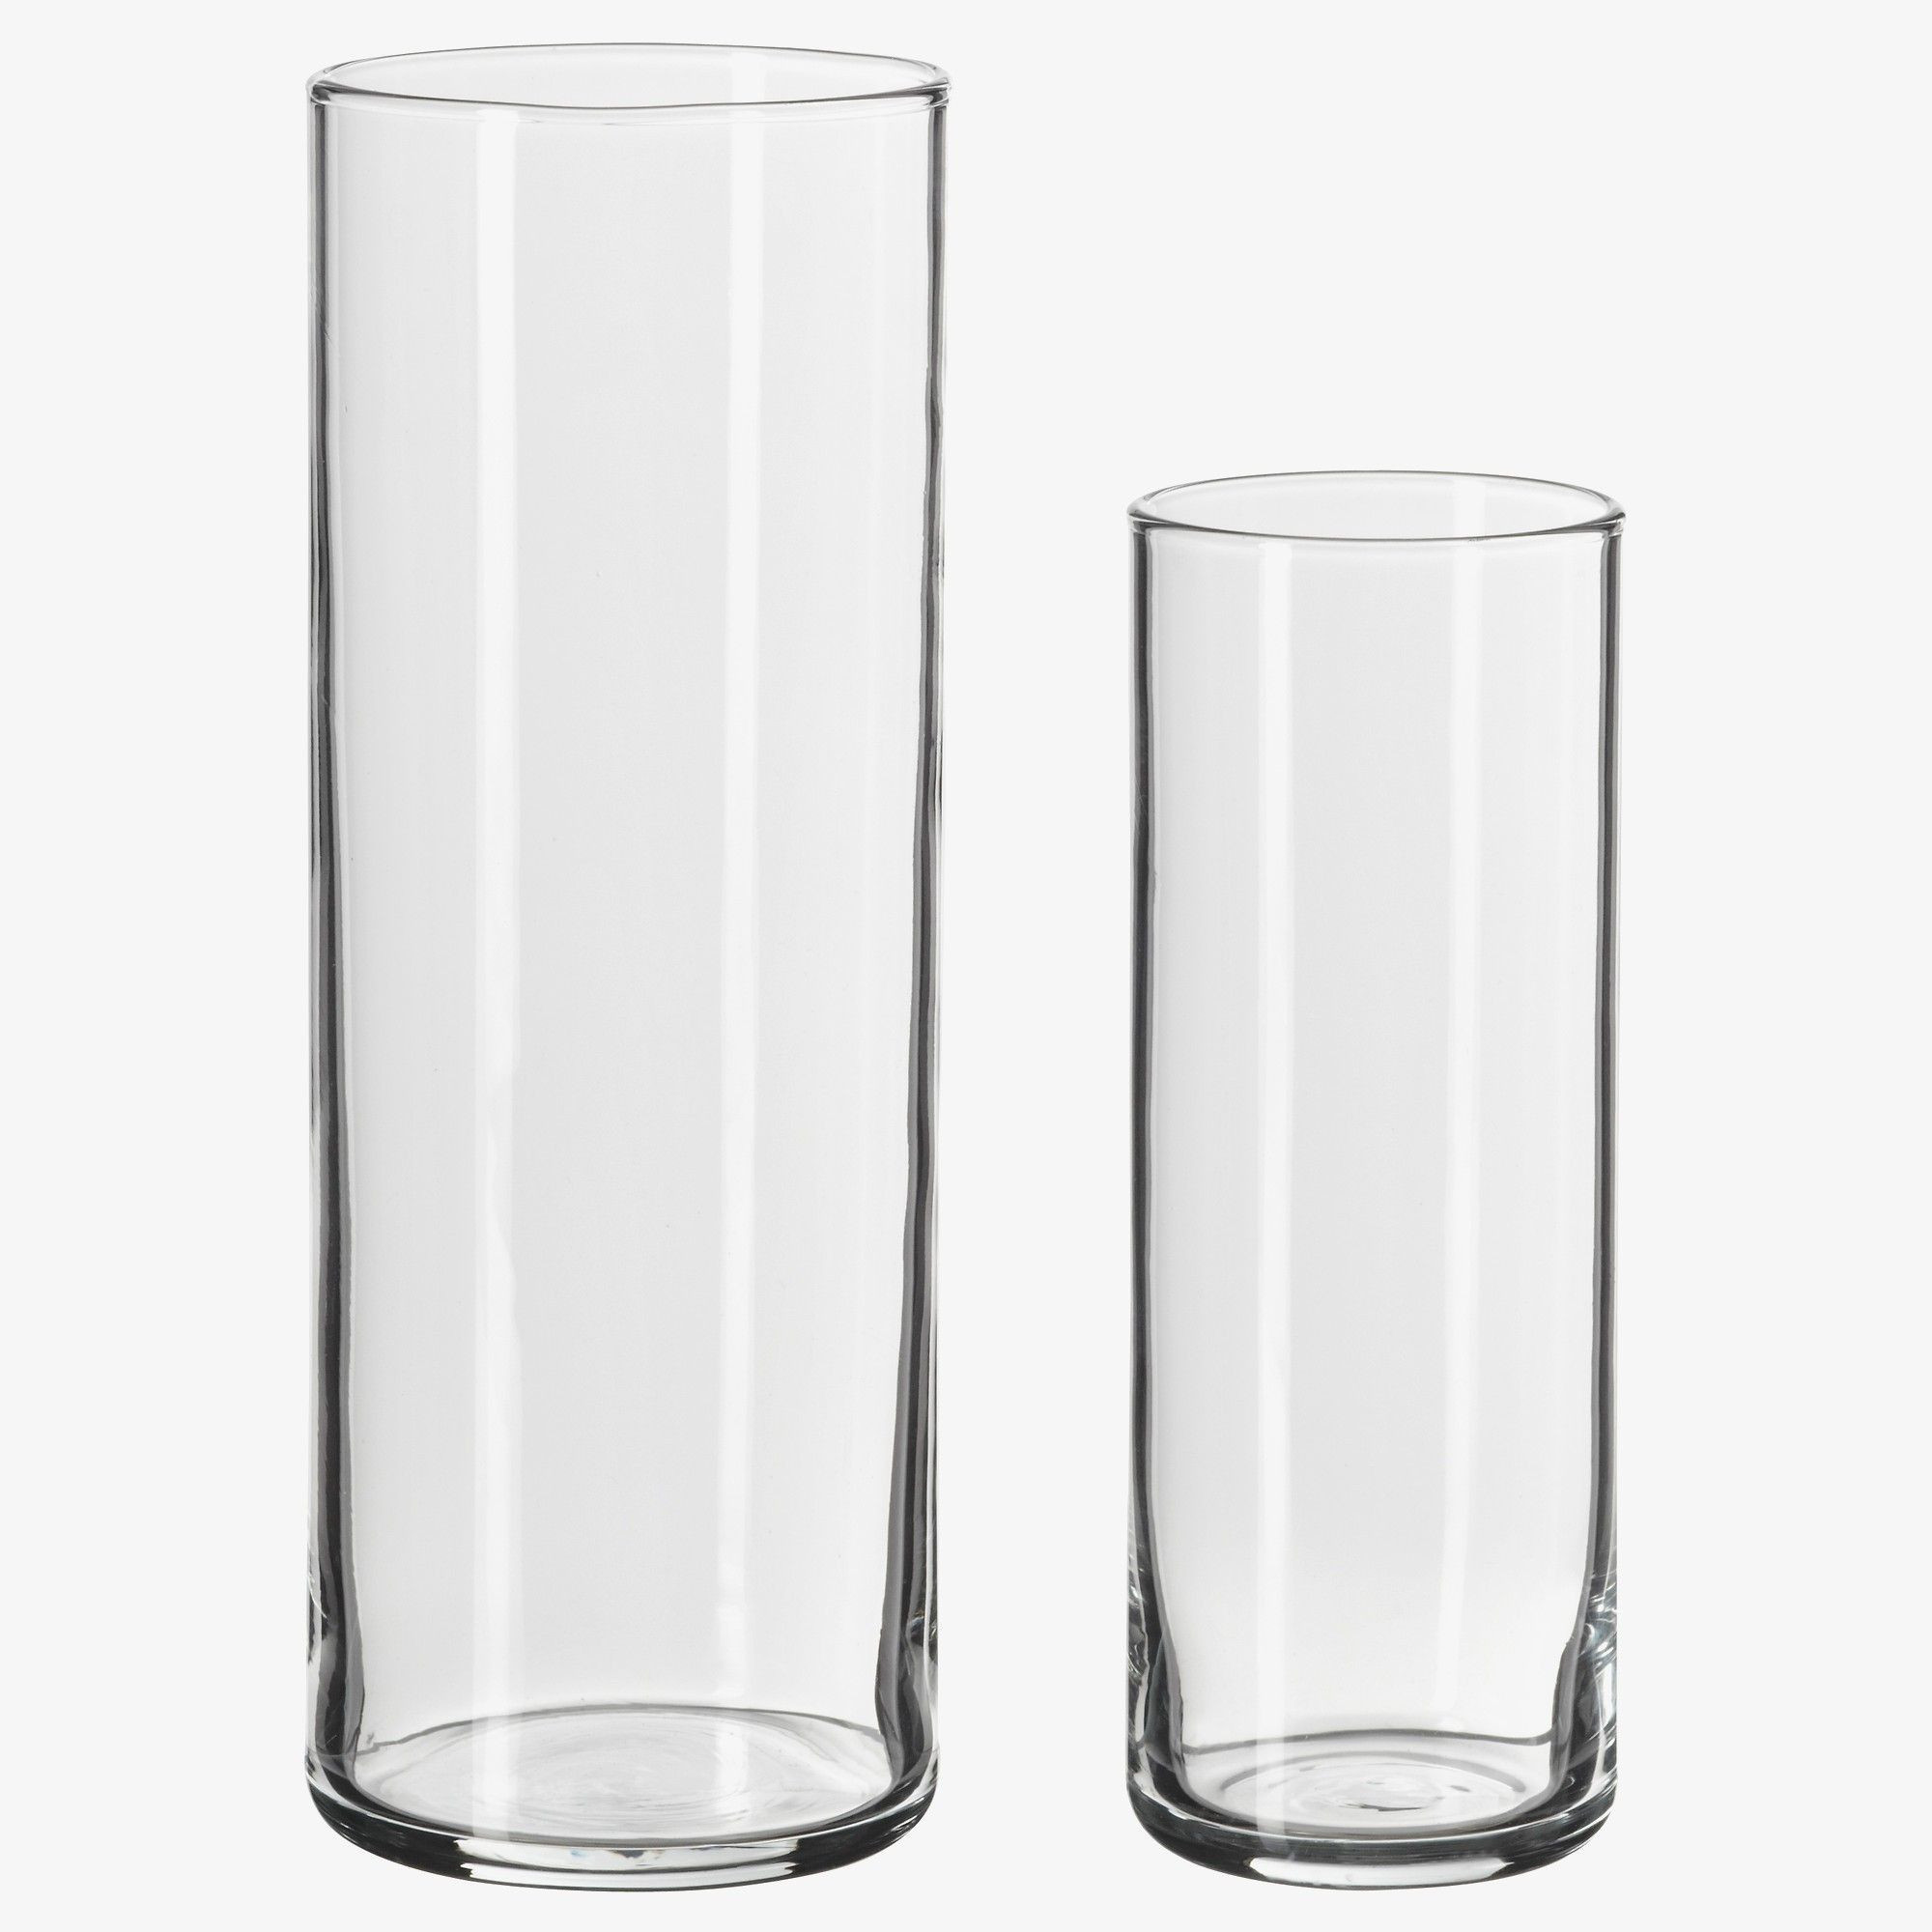 log vases for sale of 50 glass pedestal vase the weekly world within clear glass tv stand charming new design ikea mantel great pe s5h